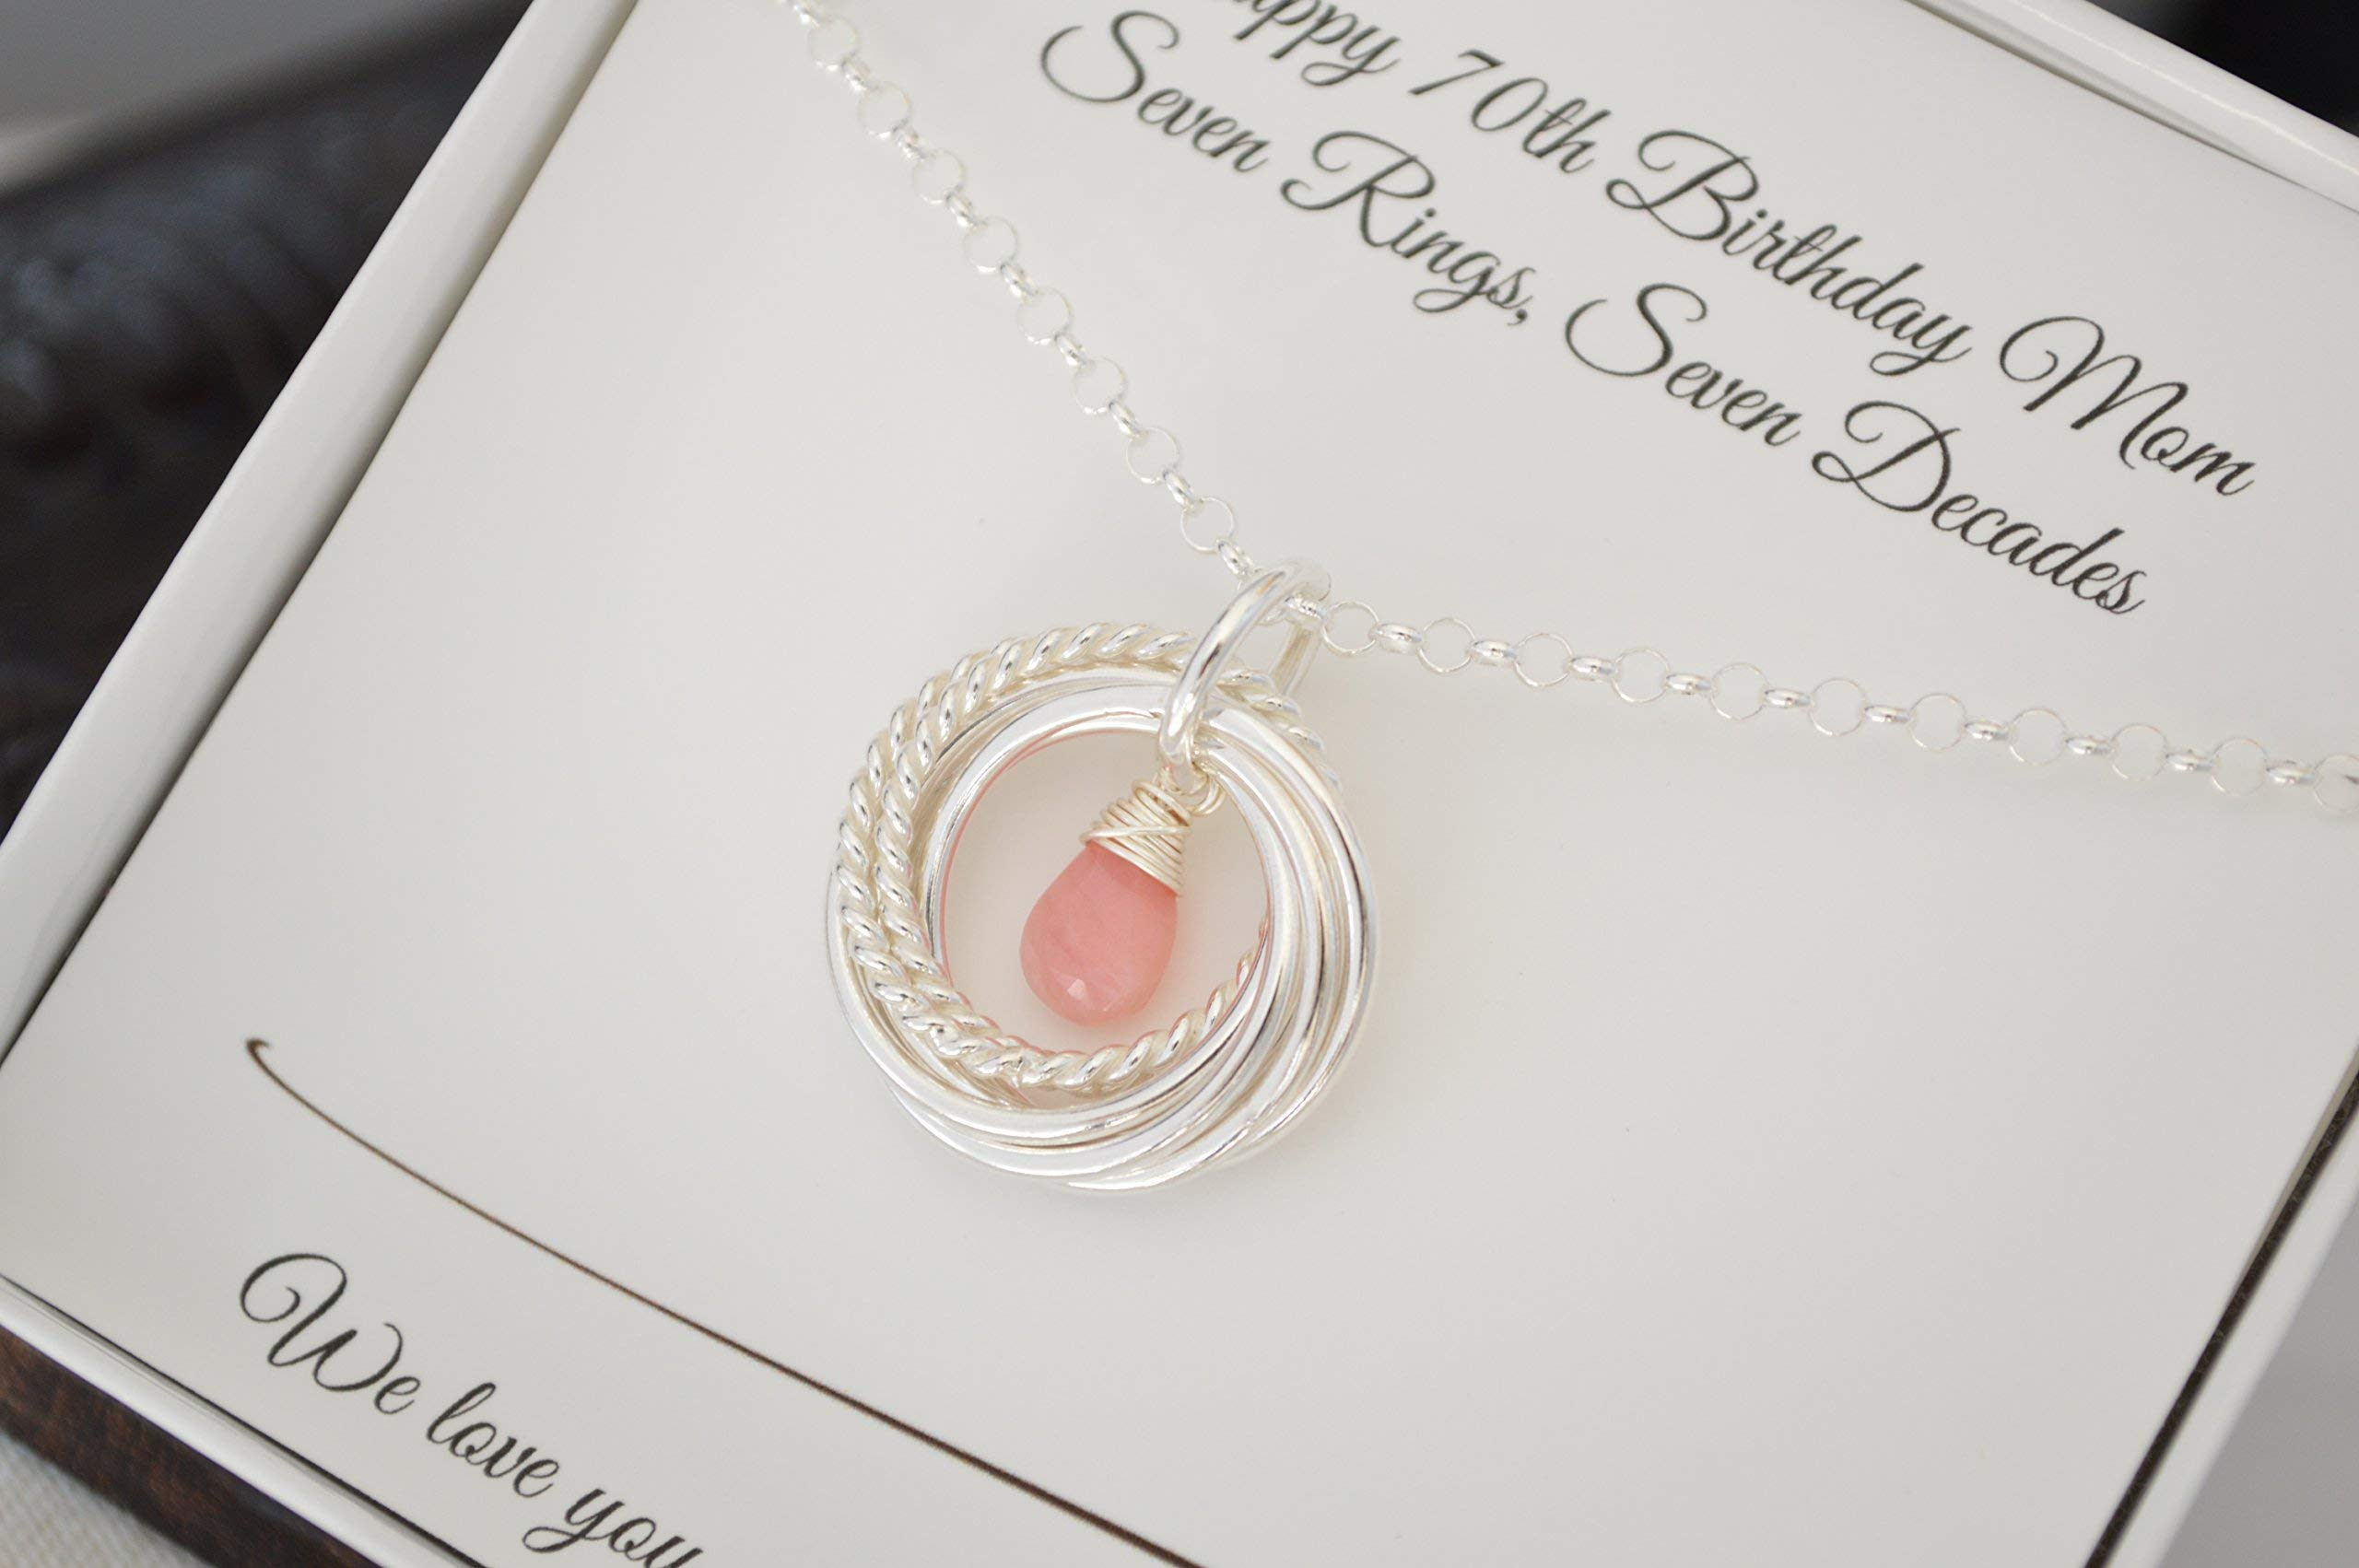 70th Birthday Gift For Grandmother Mother Necklace Jewelry Women